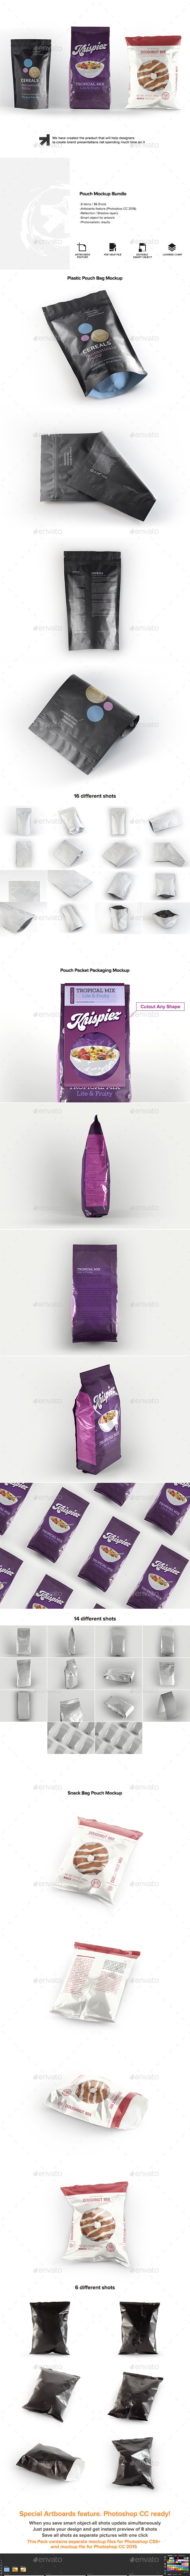 Pouch Packaging  Mockup Bundle - Food and Drink Packaging